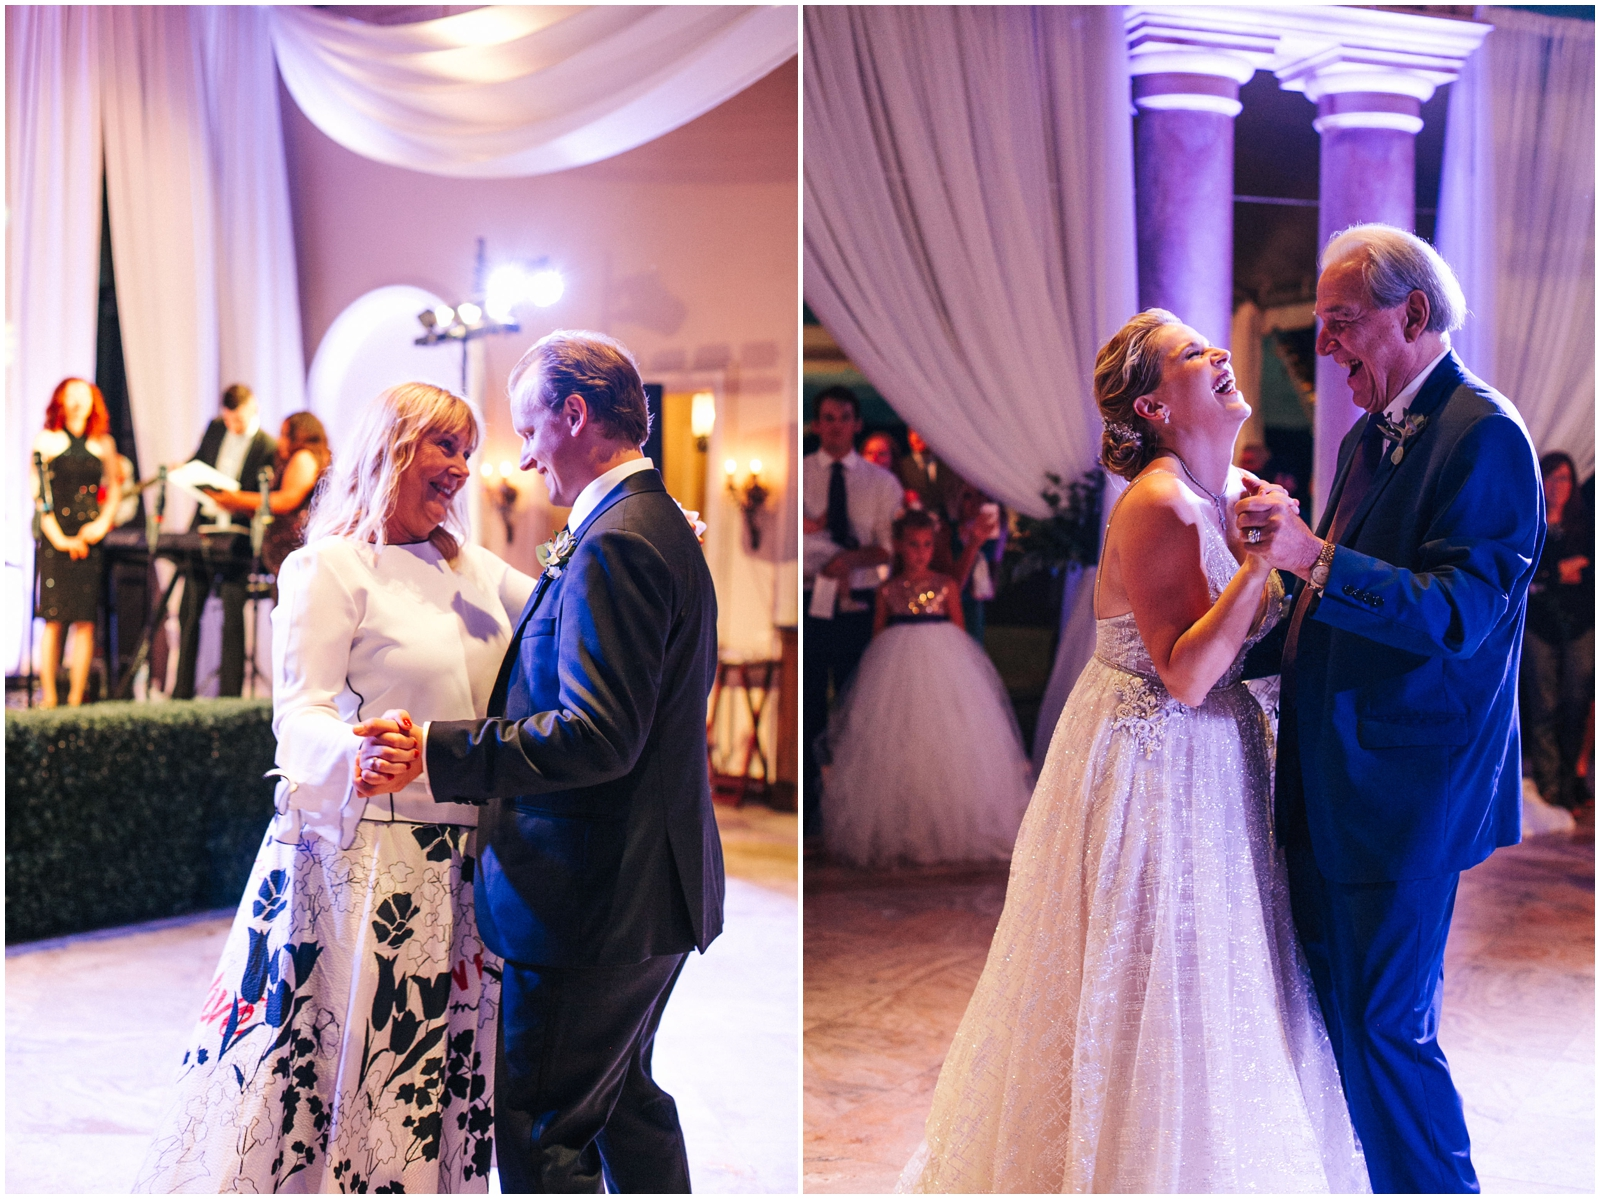 Bride and groom dancing with their parents